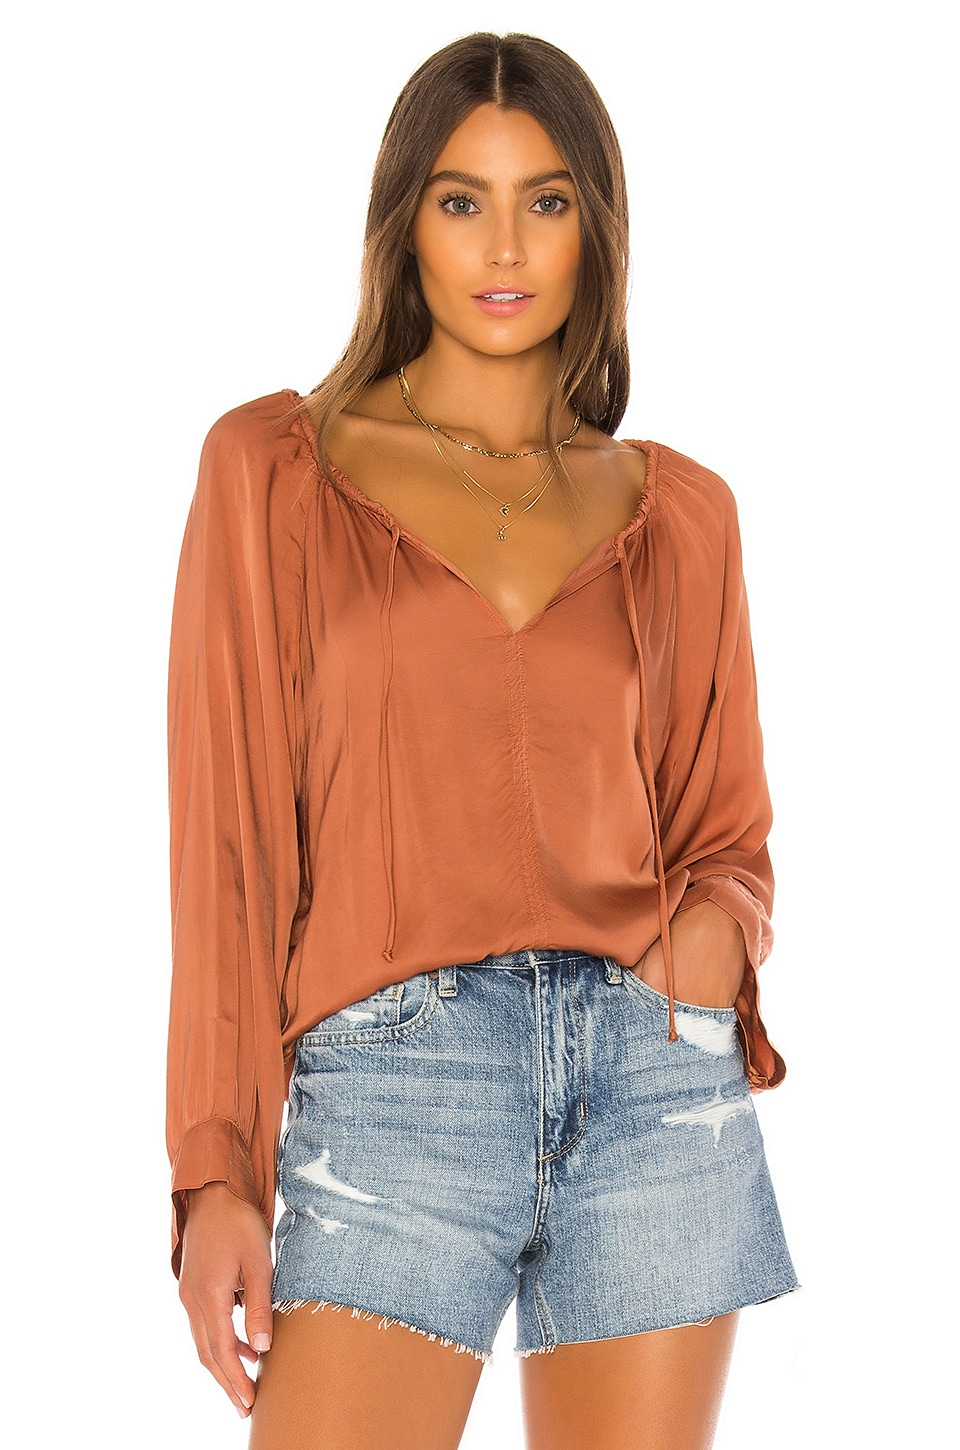 Cali Dreaming Gan Top in Copper